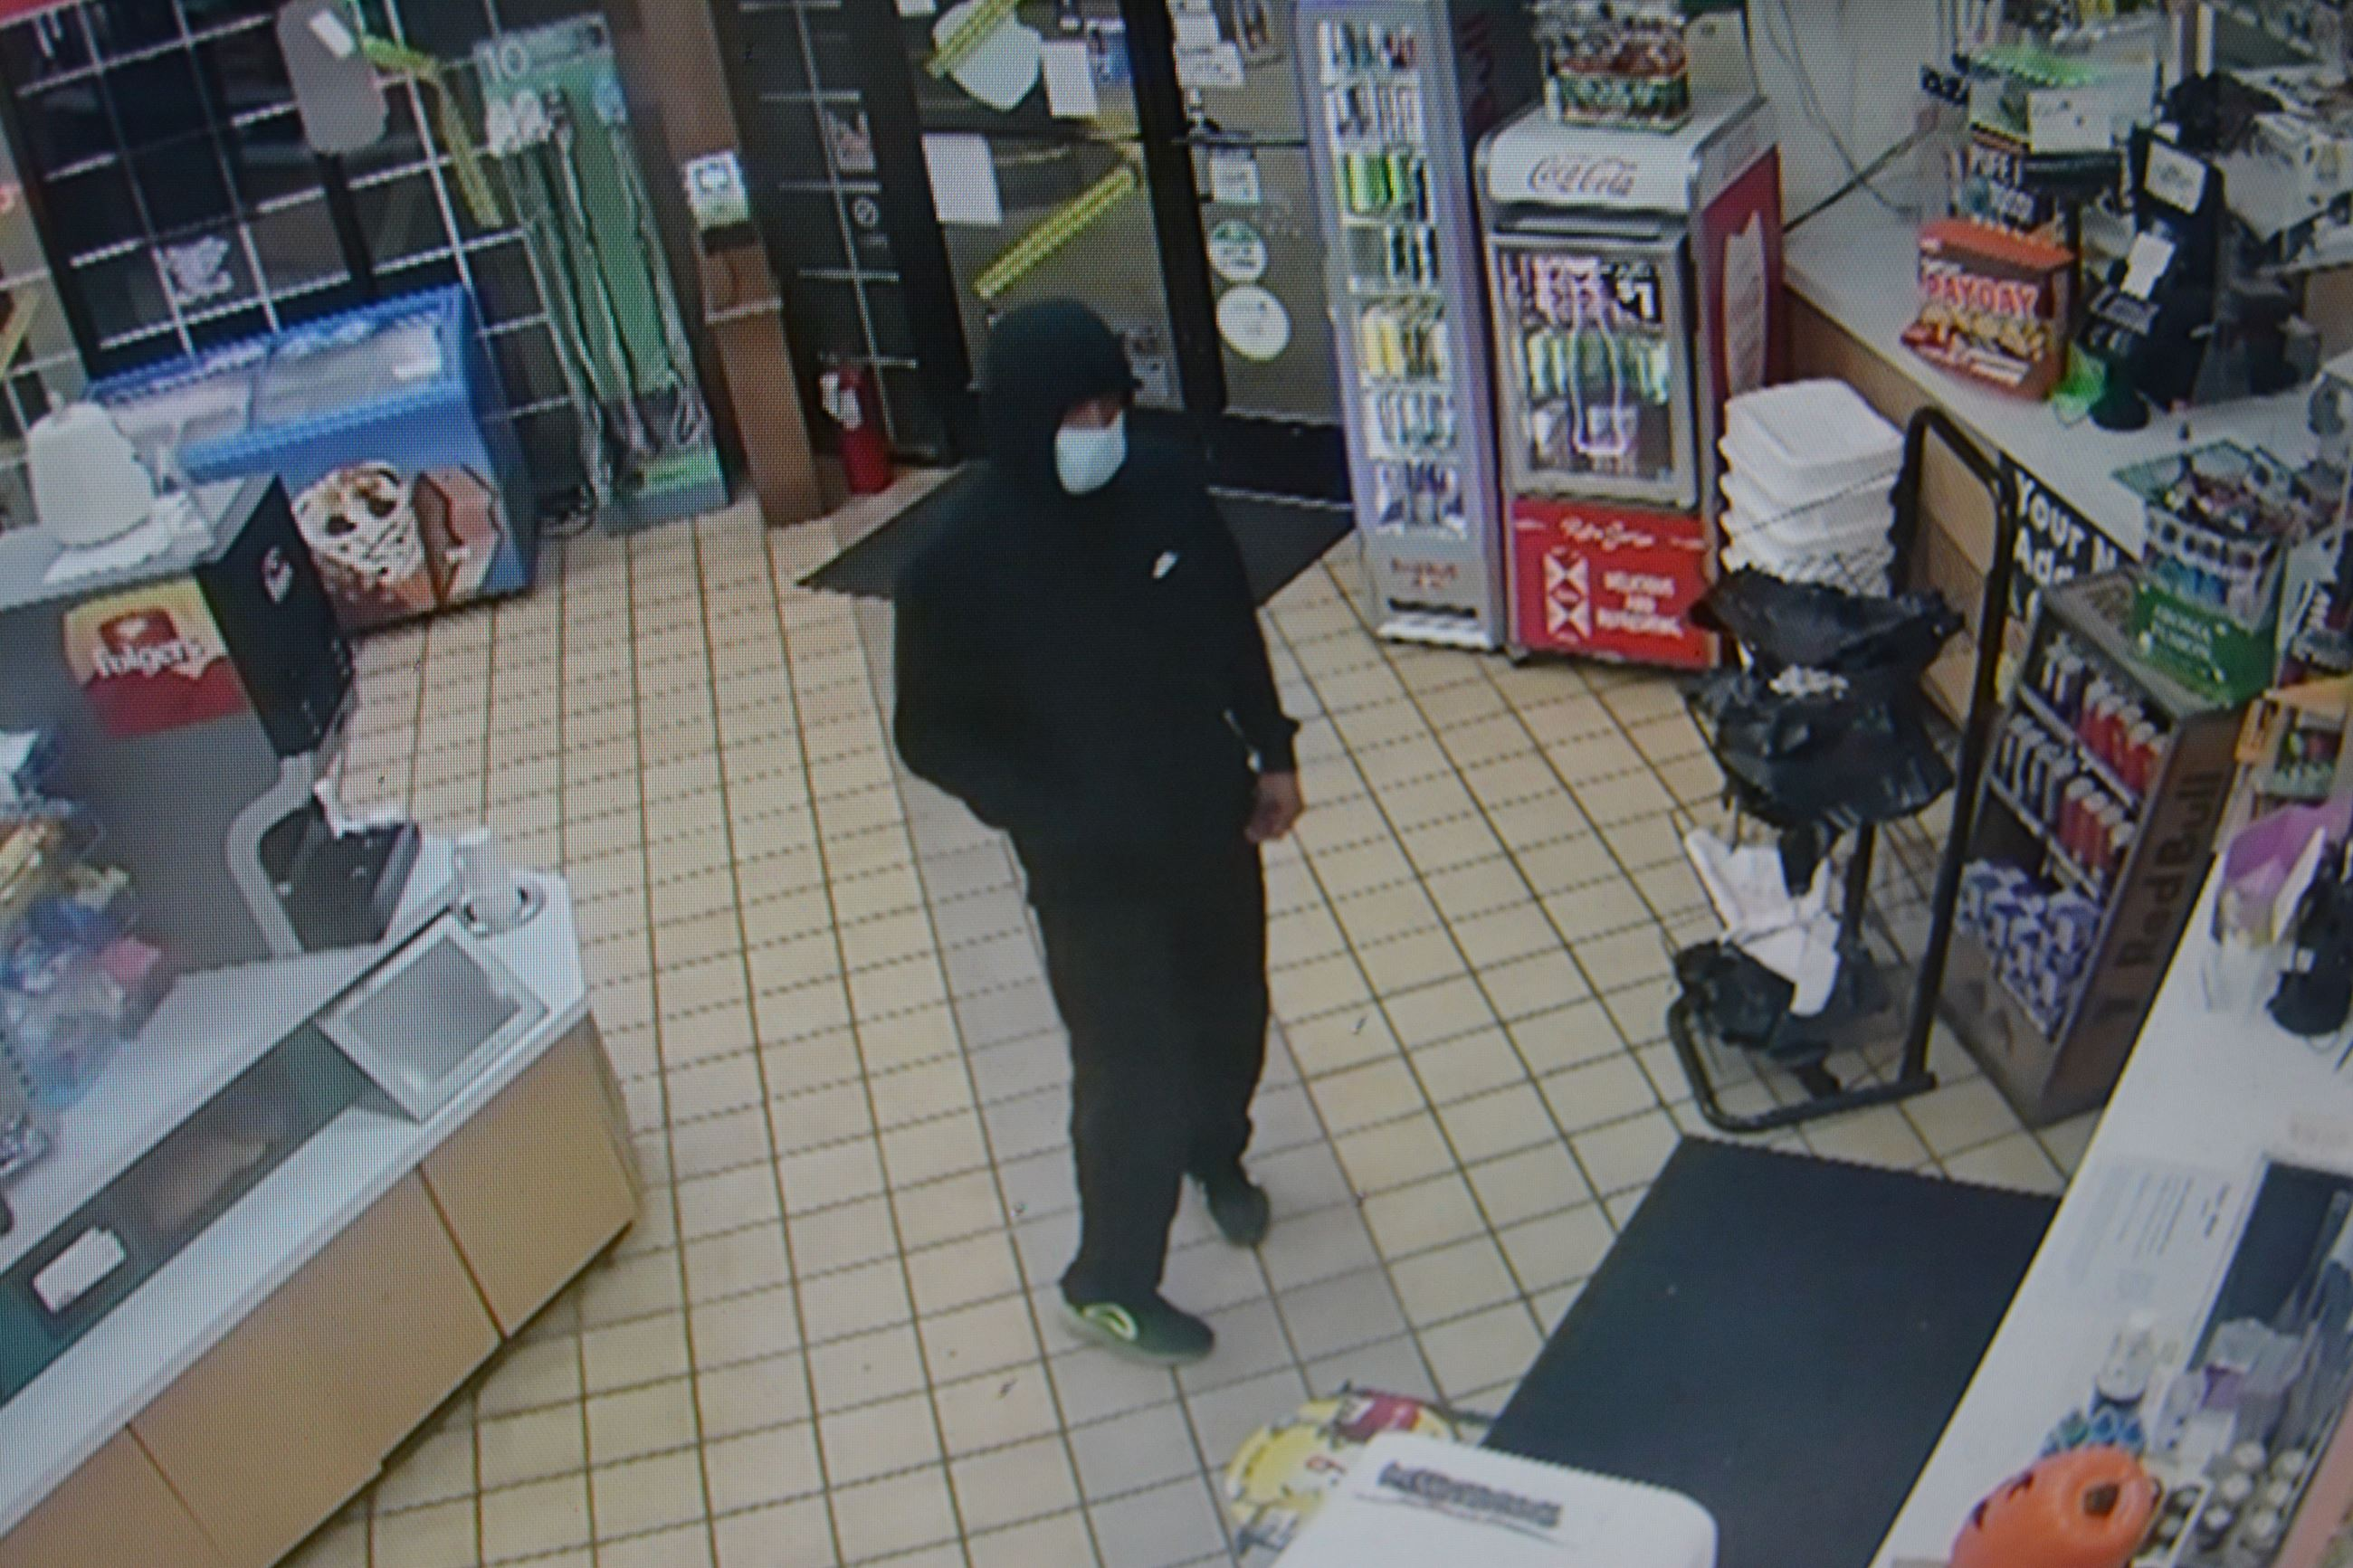 Suspect in 9-30-2020 Luckys Robbery Photo 1